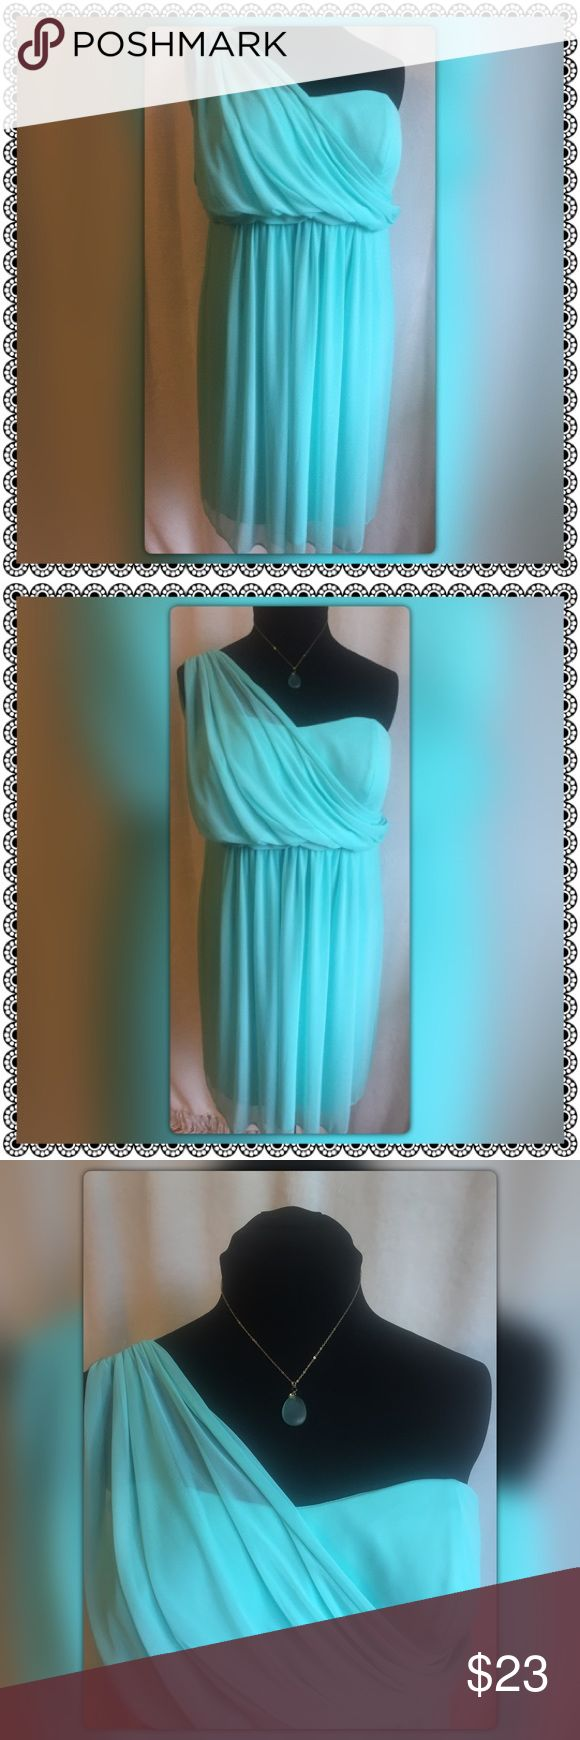 """Goddess by David's Bridal Size 22🌞Flash Sale🌞 Grecian Goddess by David's Bridal Size 22 Beautiful flowing mint green dress with Grecian pleated shoulder empire waist. Measures pit to pit 21"""" length back to hem 29""""  overall length shoulder to hem 37"""" pre loved David's Bridal Dresses One Shoulder"""